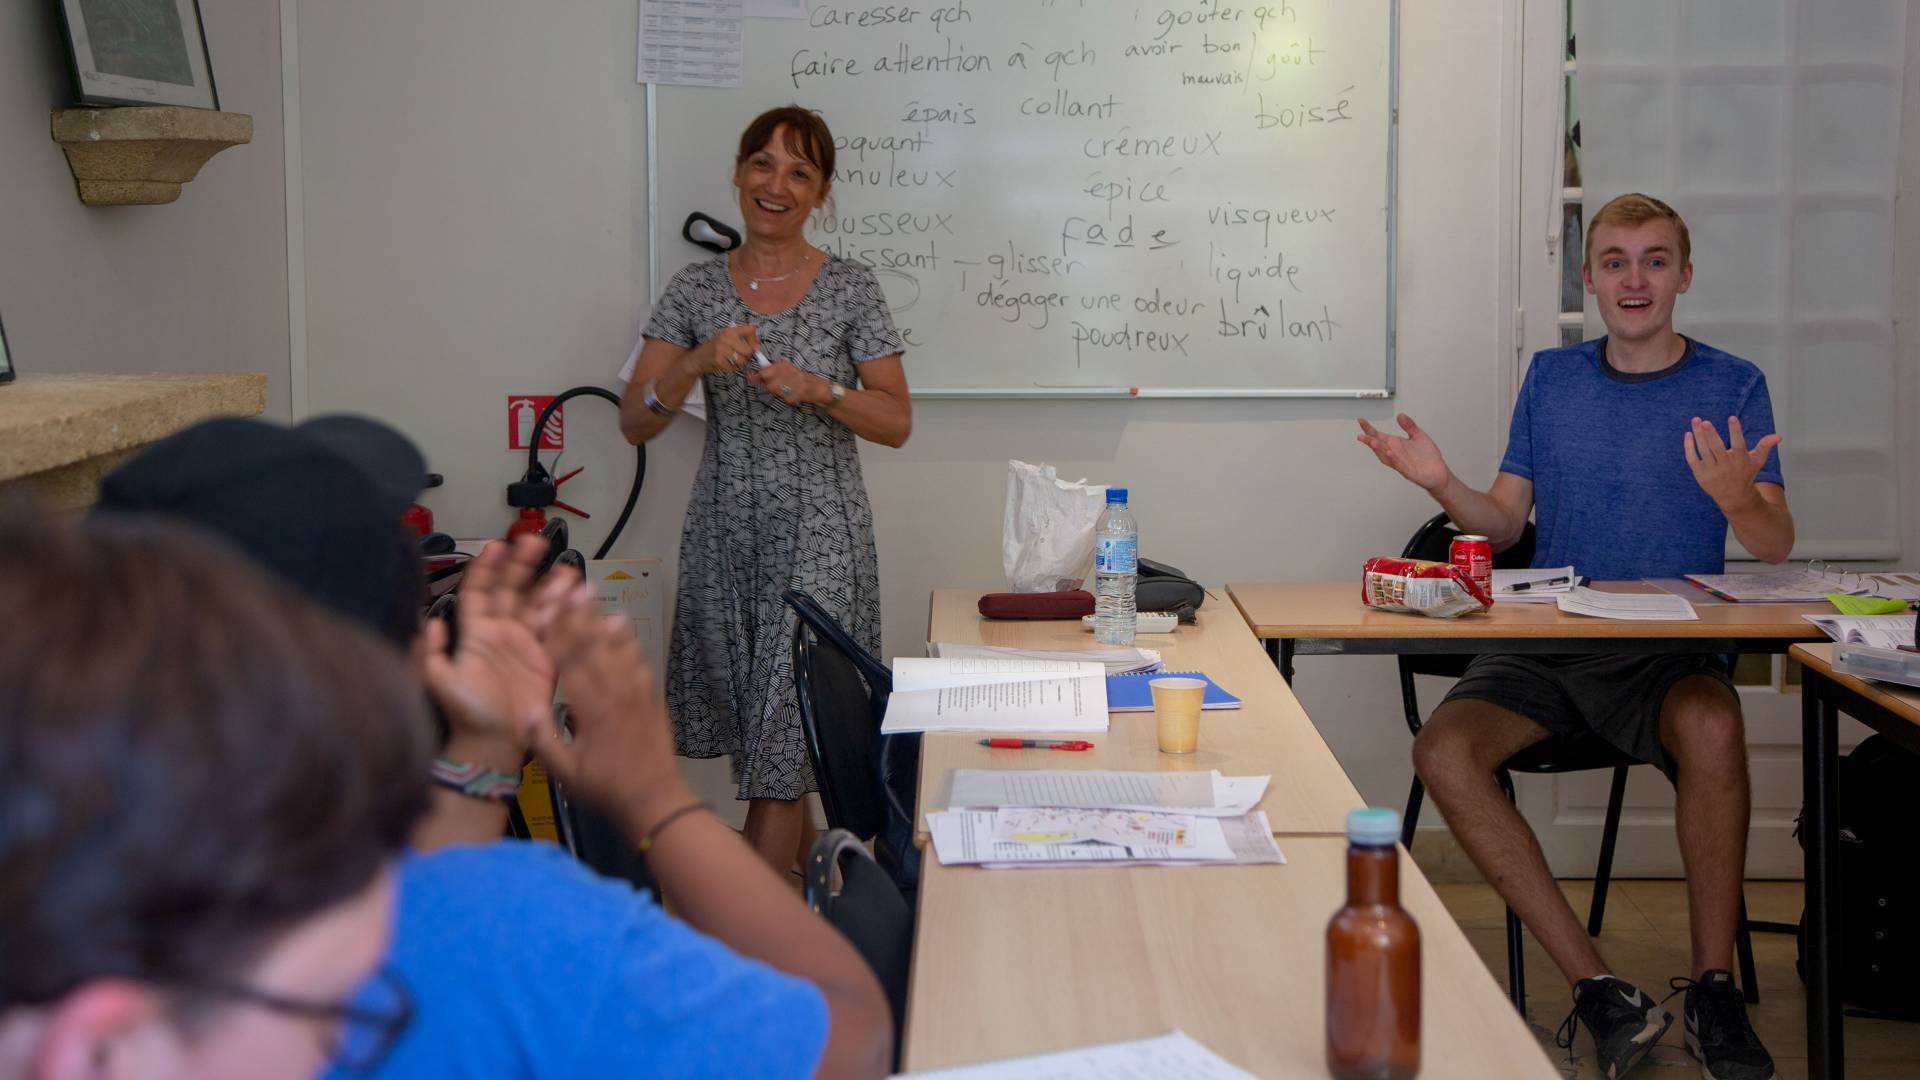 Students taking language immersion class at Aix-en-Provence language institute in France